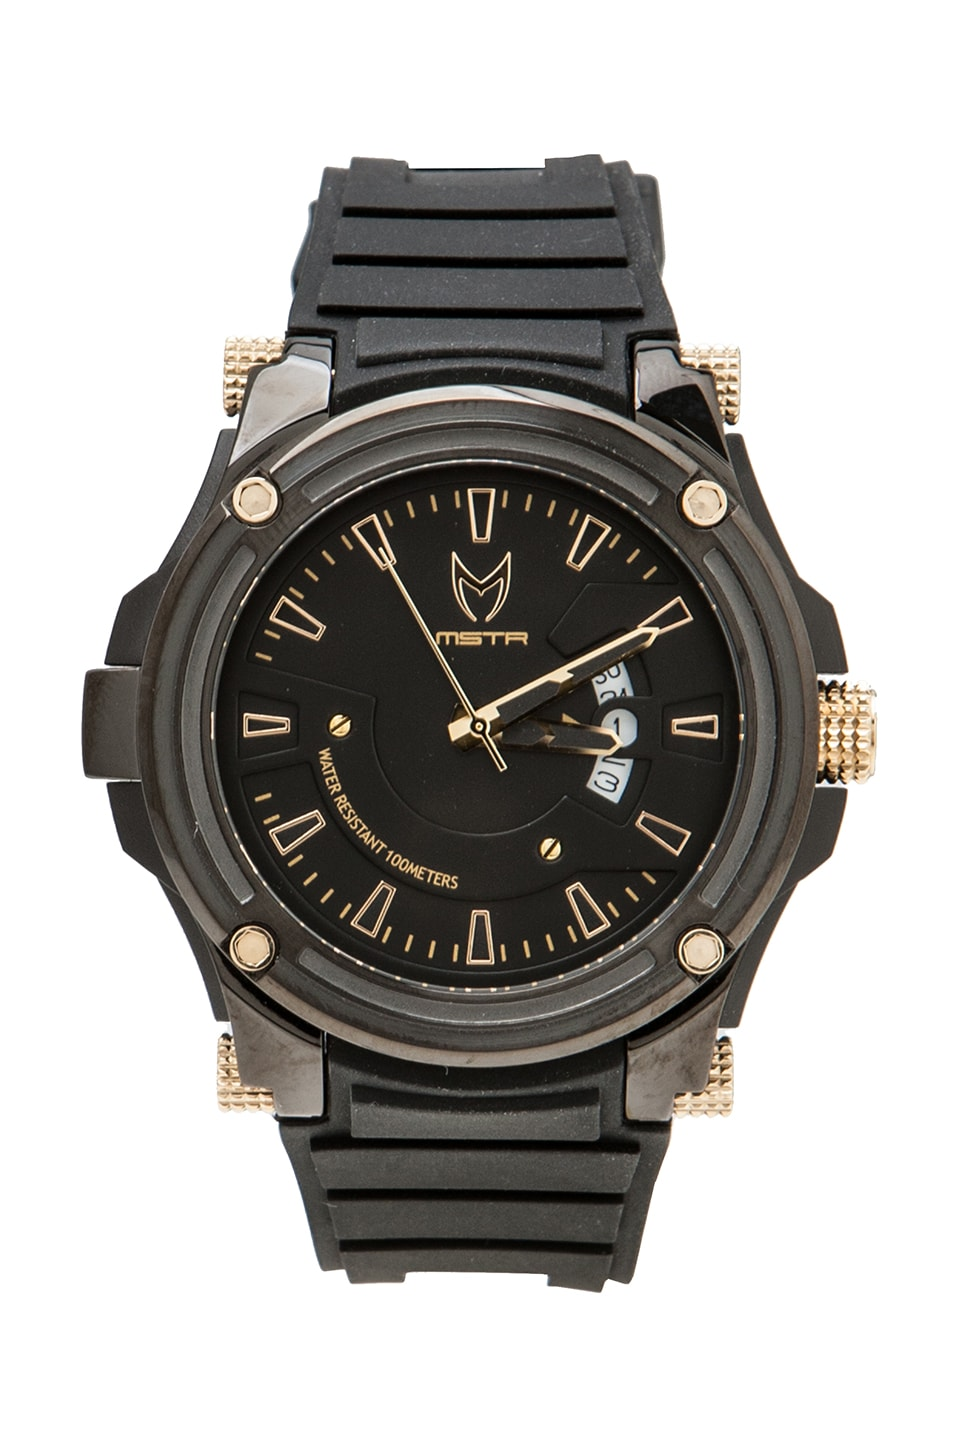 Meister Prodigy in Black w/ Gold